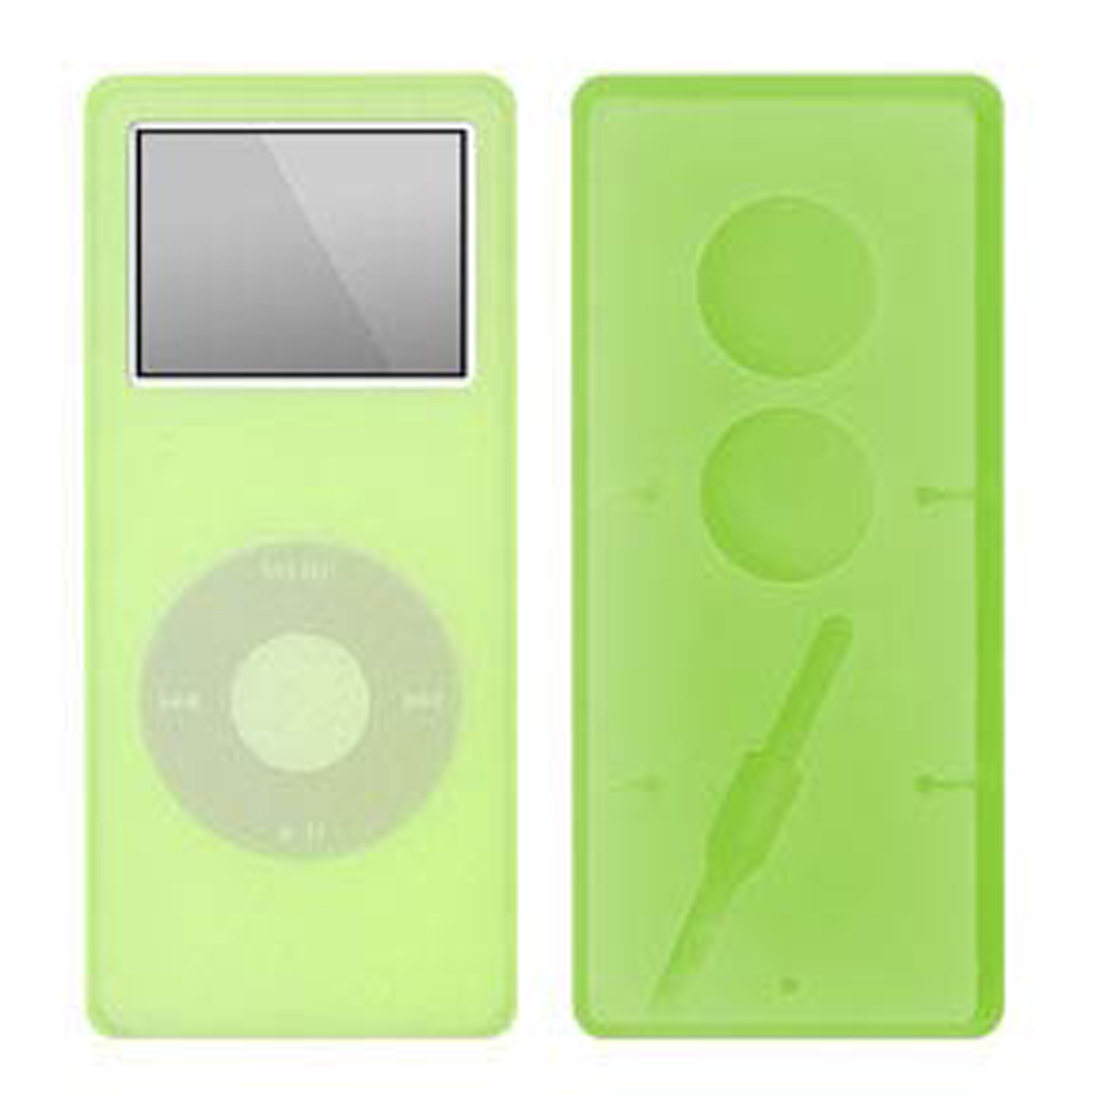 Silicone Skin for iPod Nano with Headphone Wire Wrap - Green